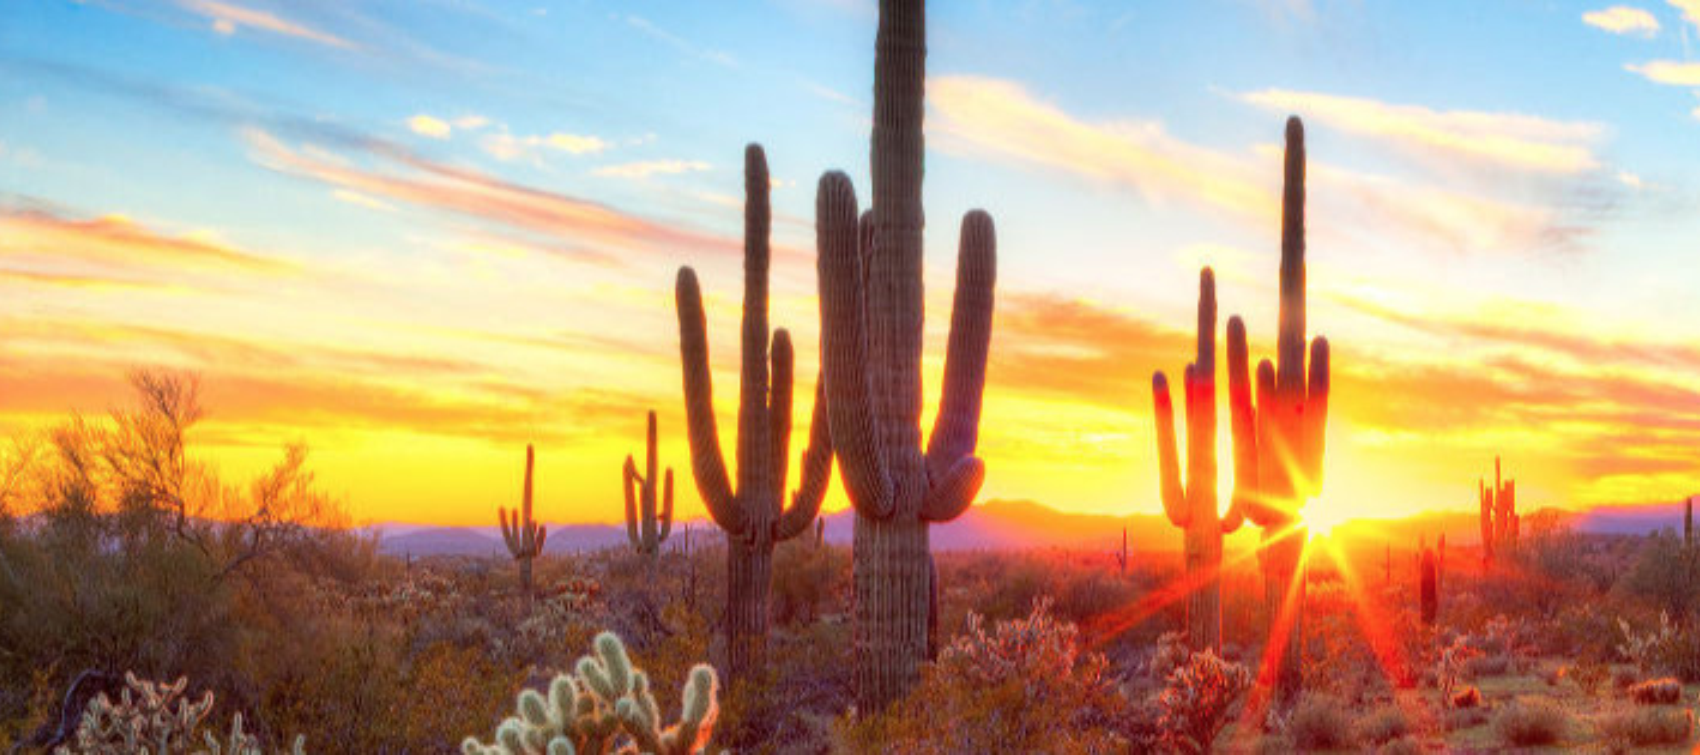 image of an arizona sunrise with saguaro cactus in the foreground